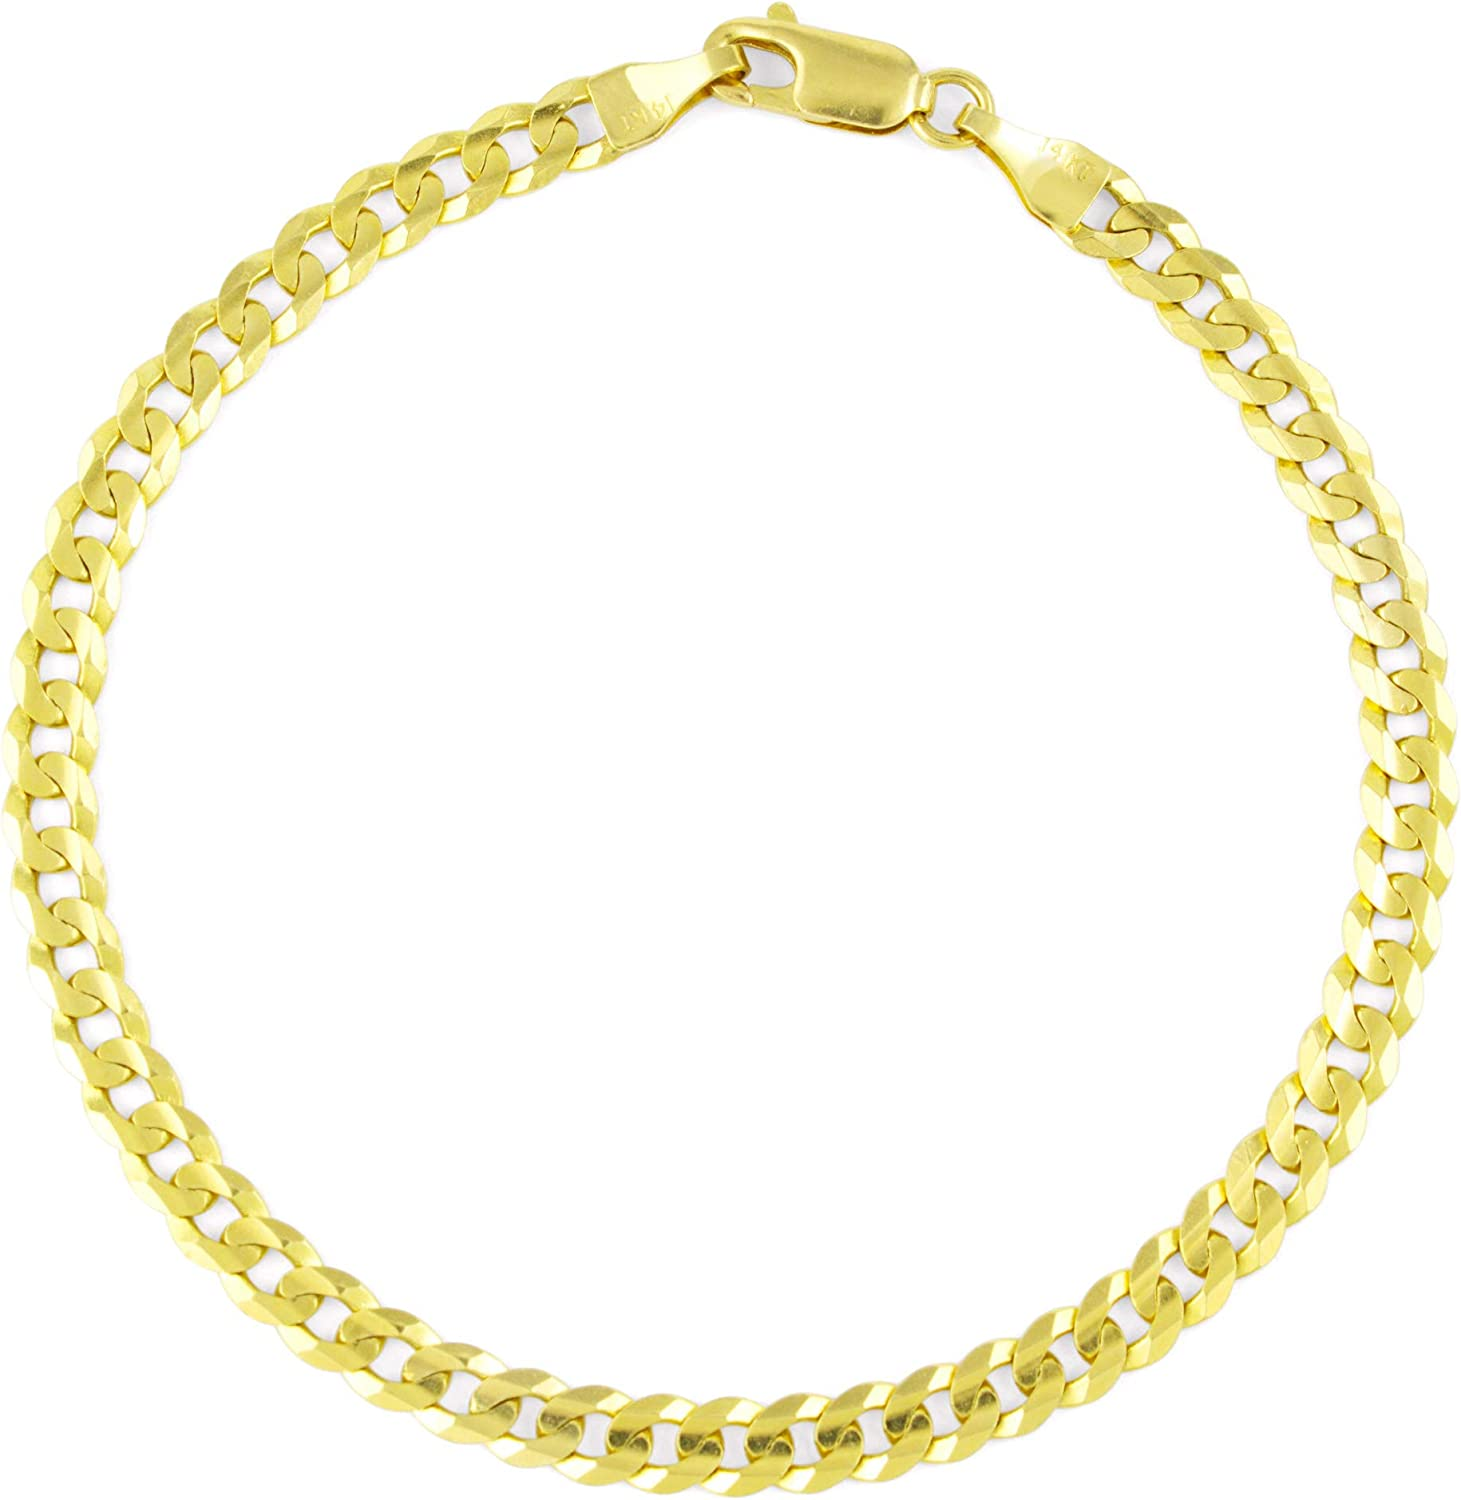 Free Shipping New Nuragold 14k Yellow Gold 5mm Solid Cuban Bracele Curb Link Chain We OFFer at cheap prices